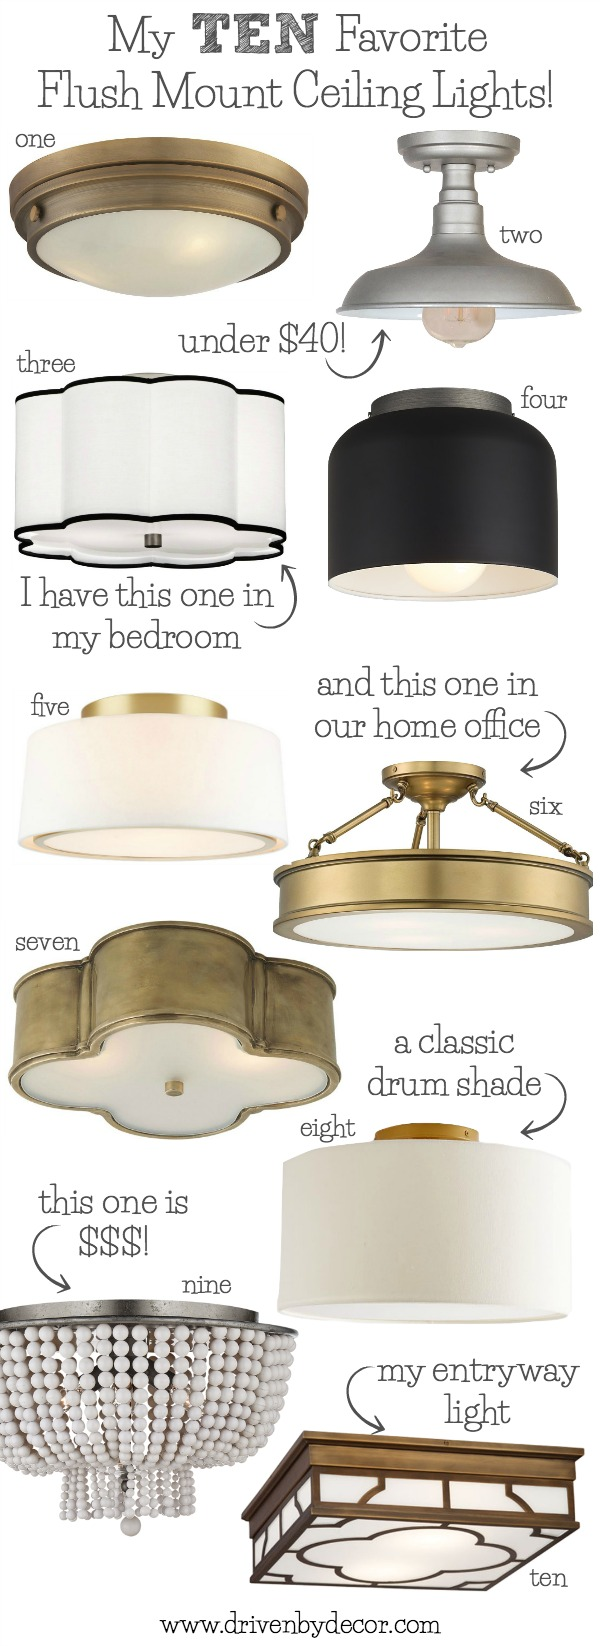 Love These Flush Mount Ceiling Light Great Choices For Your Bedrooms Kitchen Family